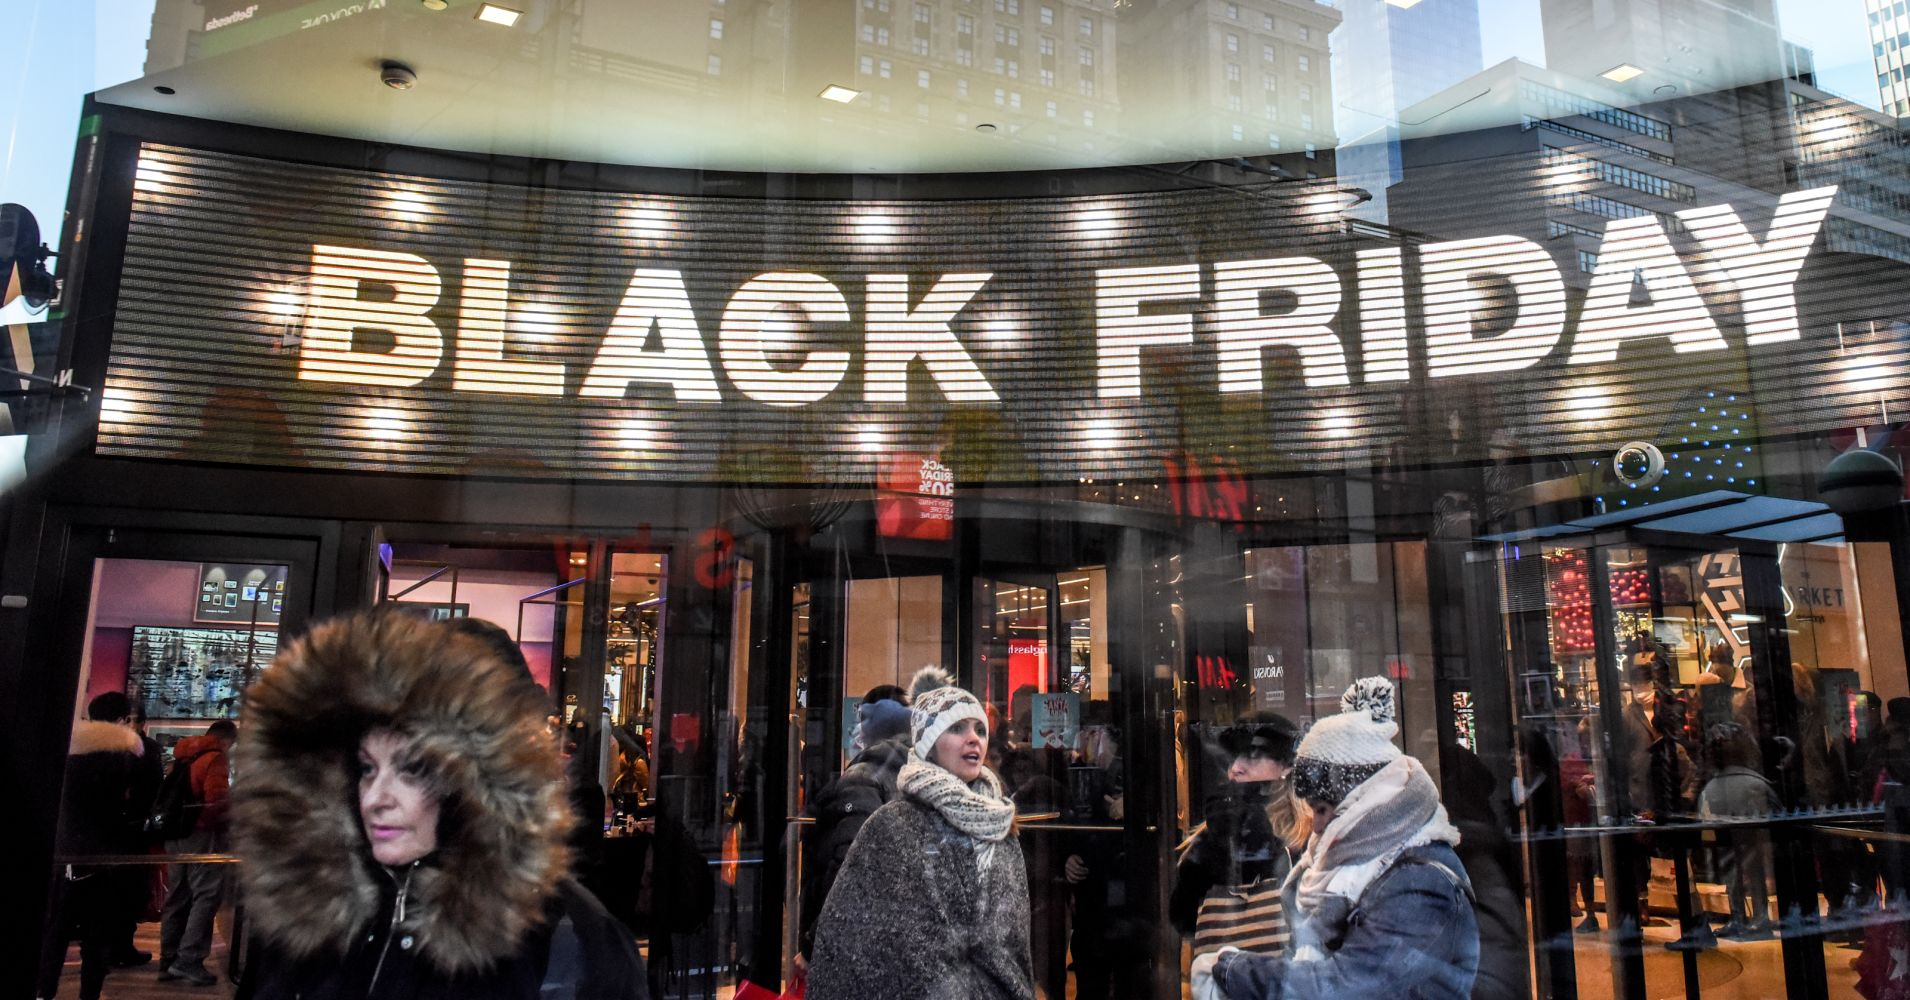 Black Friday pulled in a record $6.22 billion in online sales: Adobe Analytics